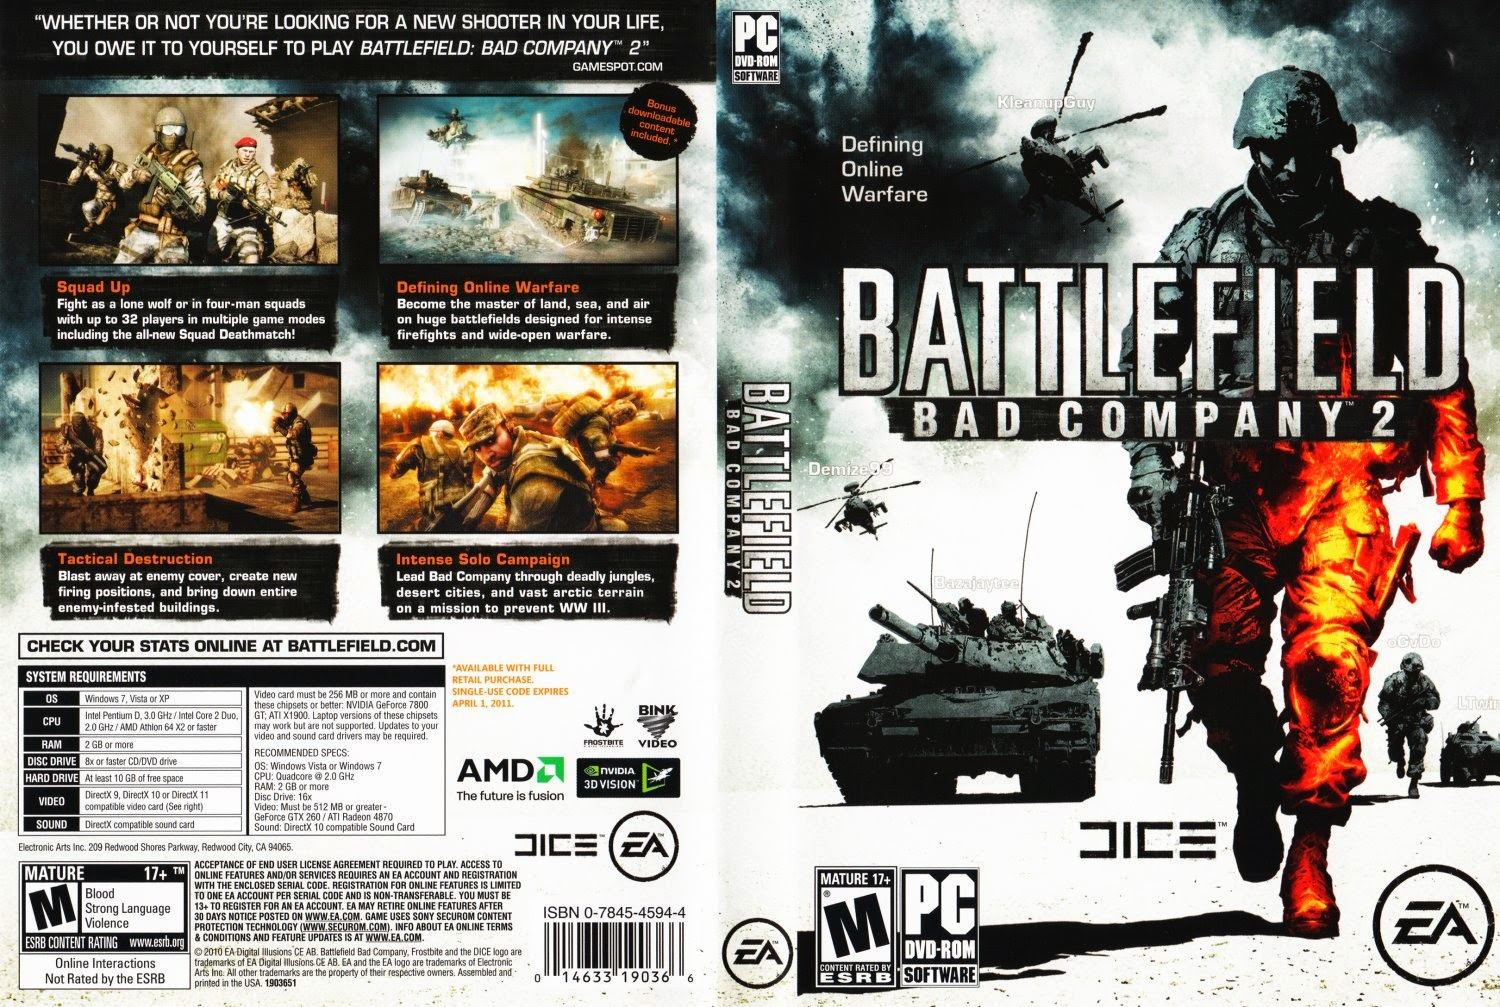 battlefield bad company 2 full pc game hardrip spark worldz